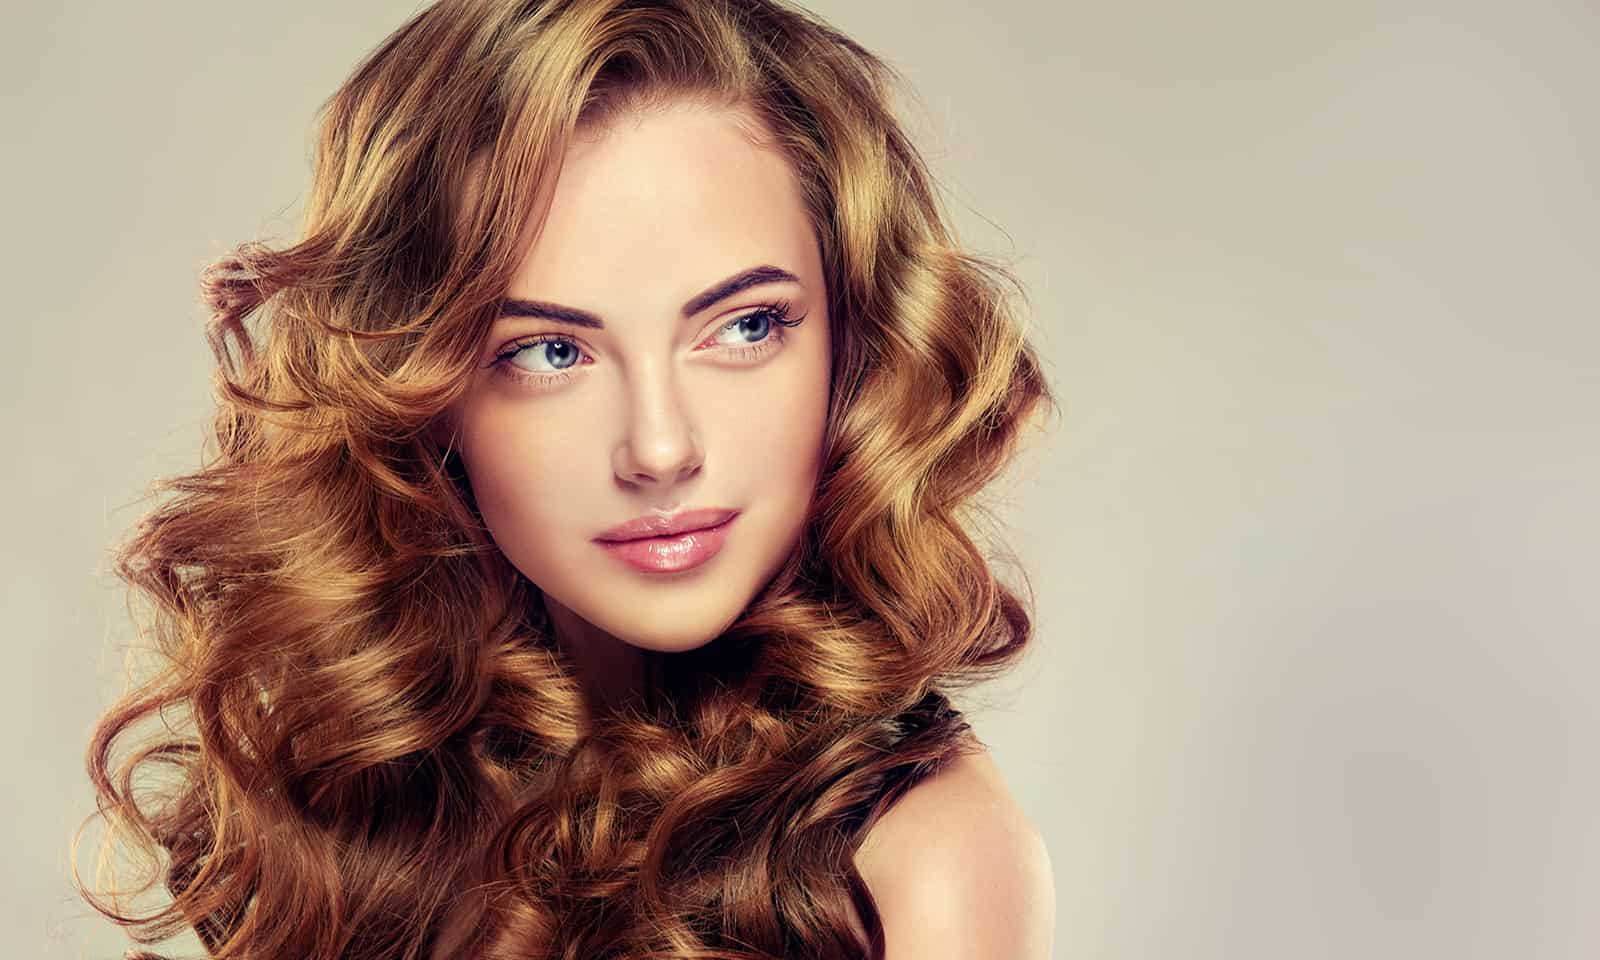 5-Shampoos-&-Conditioners-Vegans-are-Obsessed-With-main-image